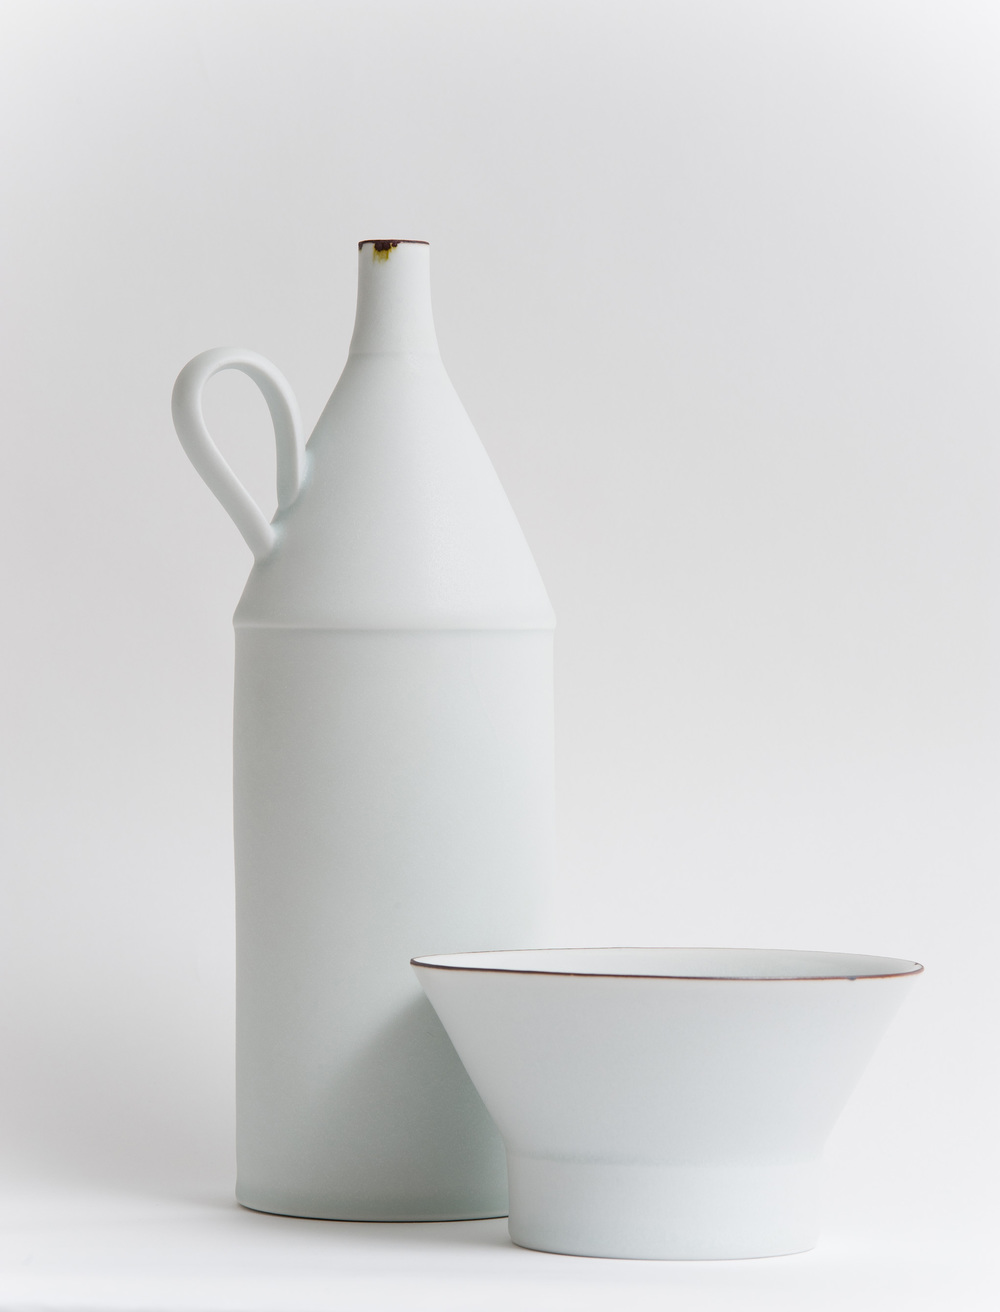 11.Tea Can and Bowl with Flange .jpg